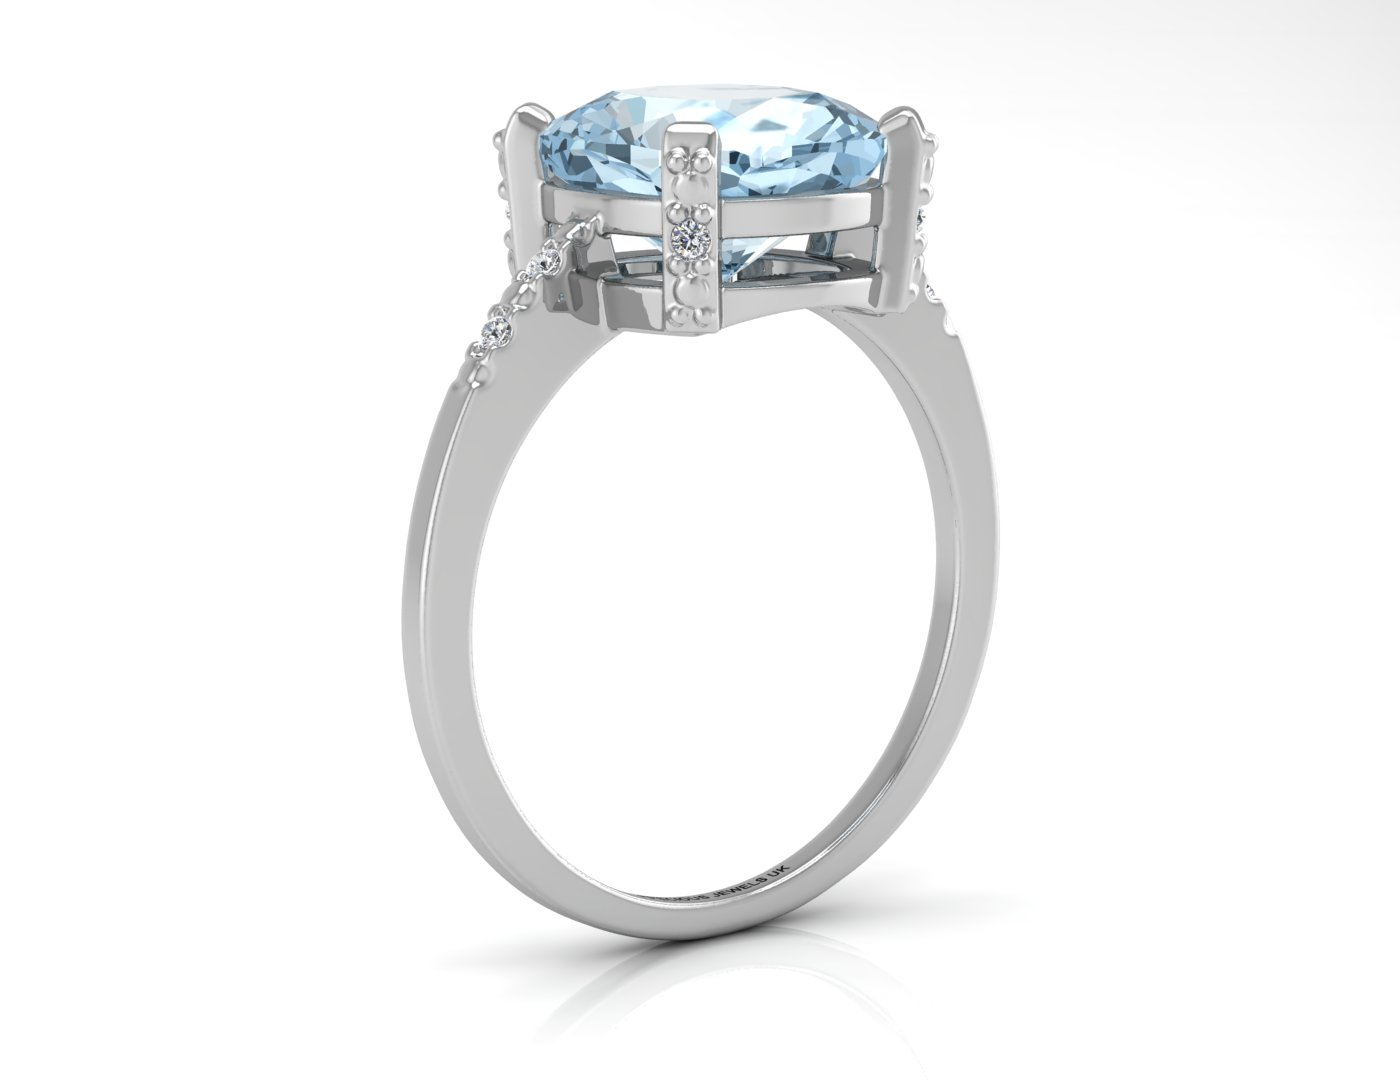 9ct White Gold Diamond And Blue Topaz Ring 0.04 Carats - Image 2 of 4